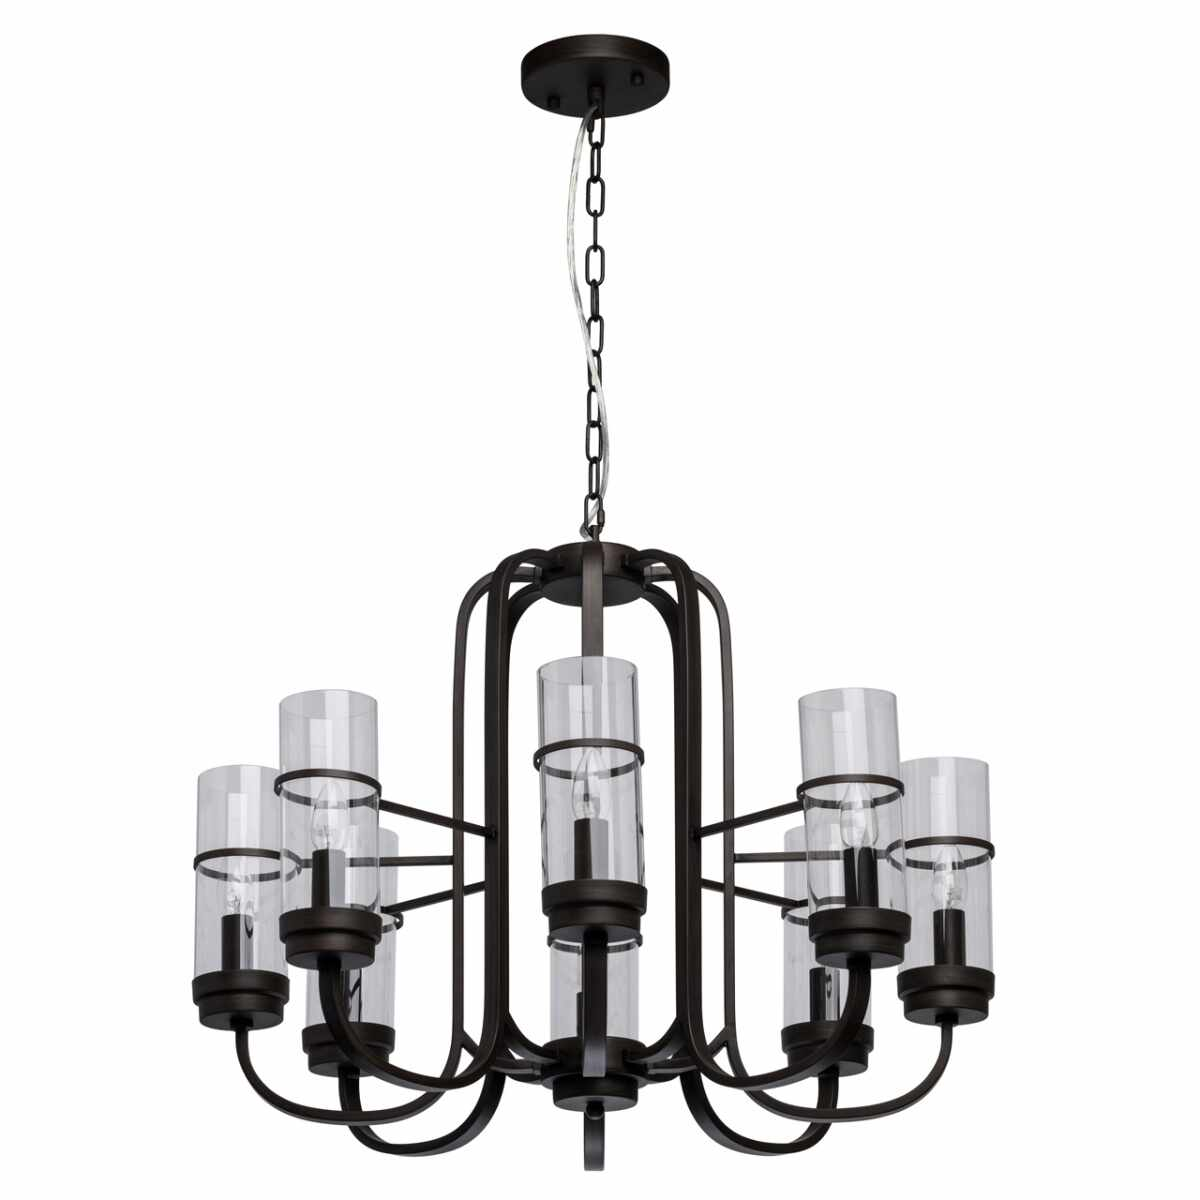 Candelabru MW-Light Country 249018708 la pret 1892 lei